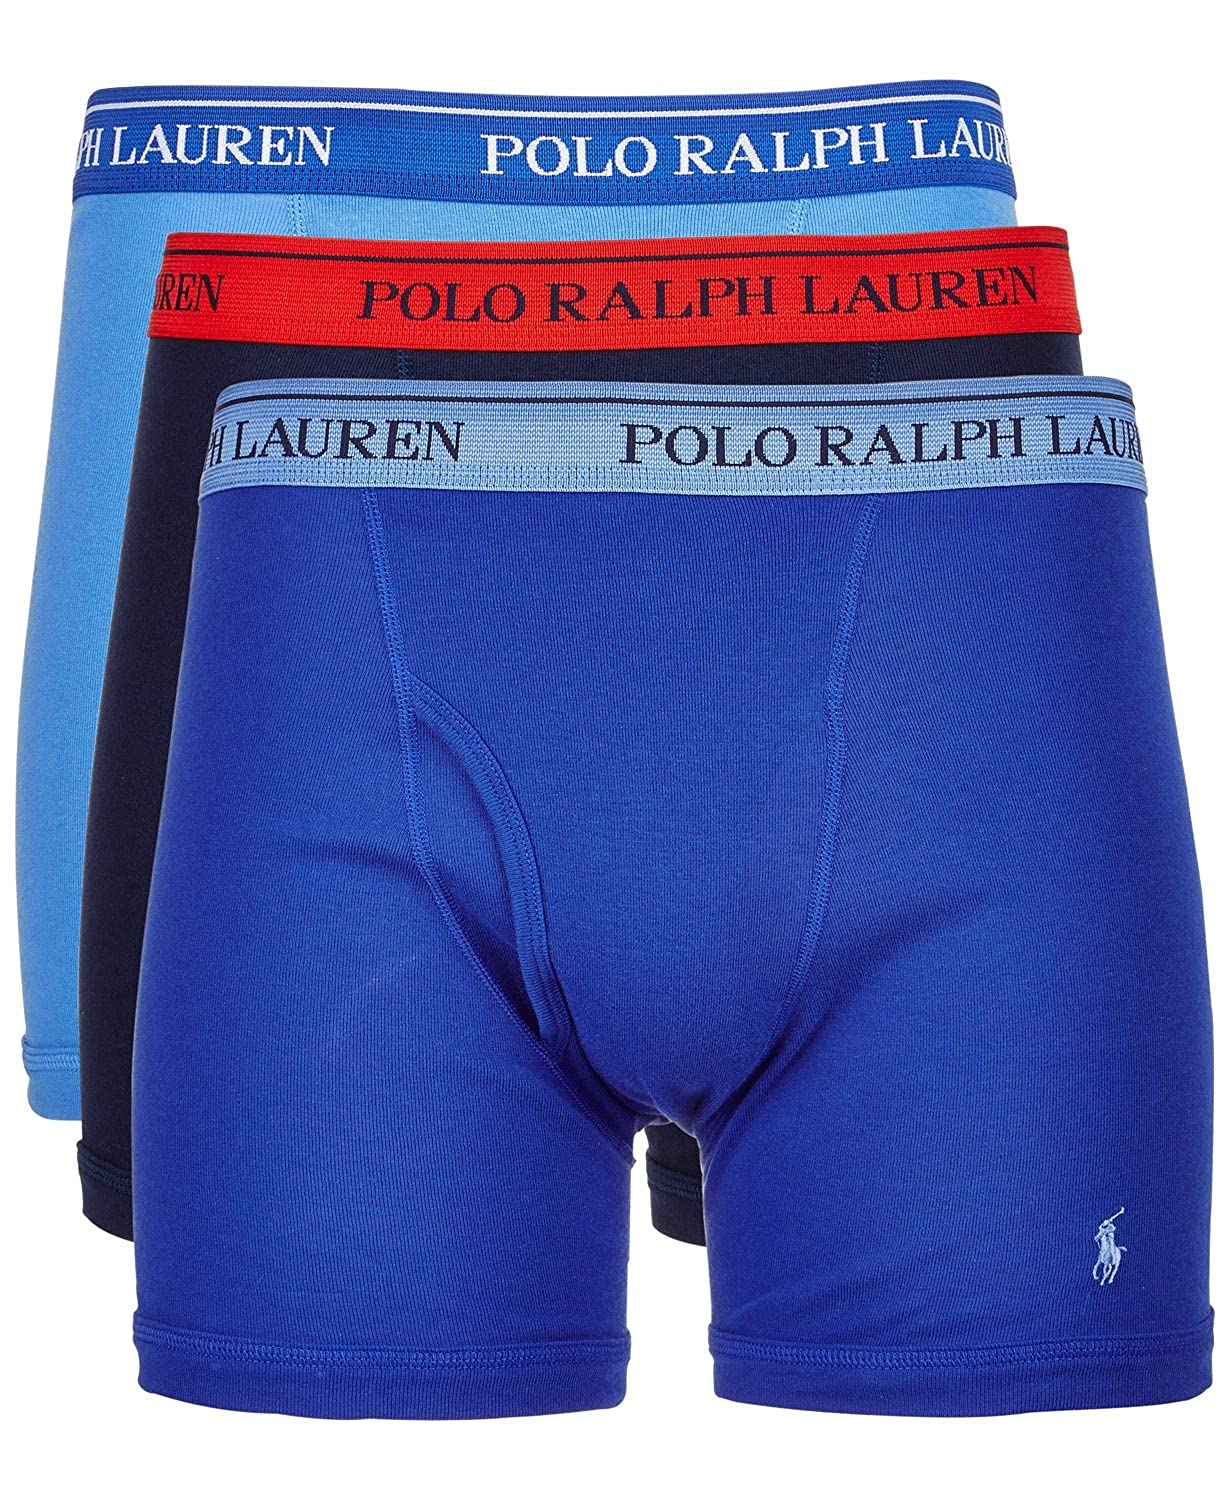 most popular compare price search for clearance Polo Ralph Lauren Men's 3-Pack Boxer Brief